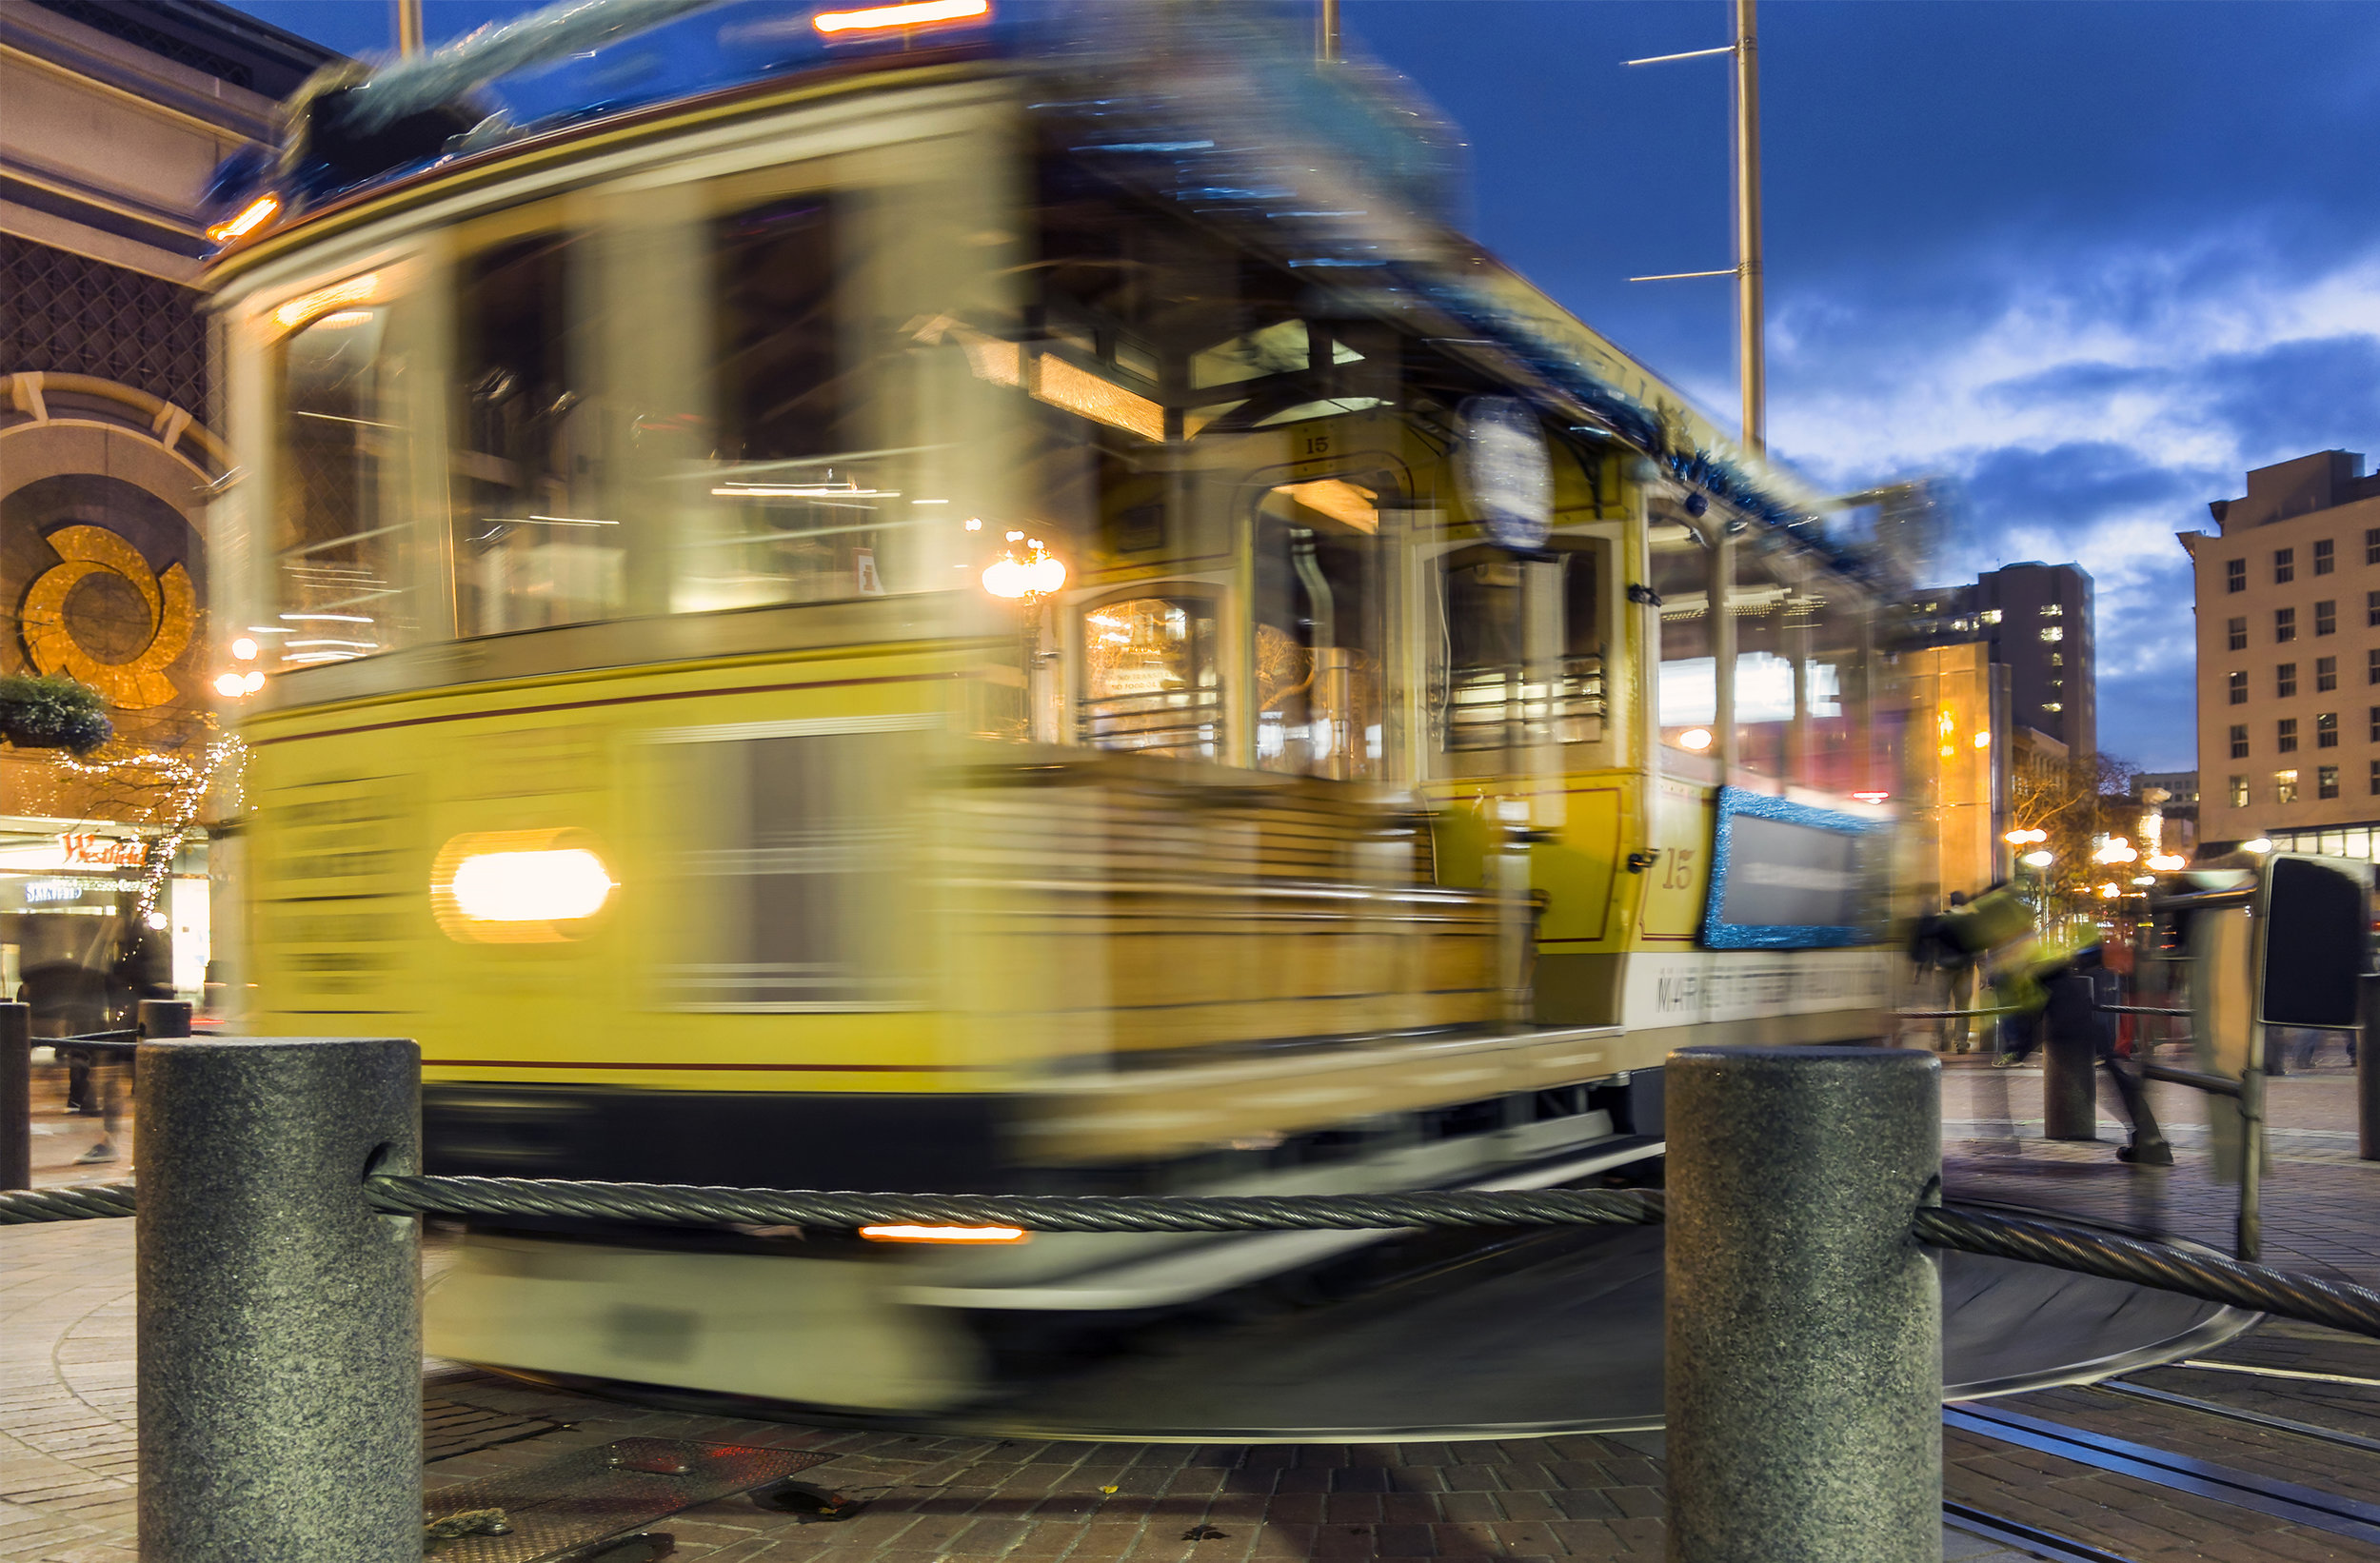 Operators spin one of the famed San Francisco cable cars on its rotating pallet on the corner of Market and Market Streets on Thursday, January 25, 2018 in San Francisco, Ca. The long exposure was shot with a Light L16. Photo by David Andrews.